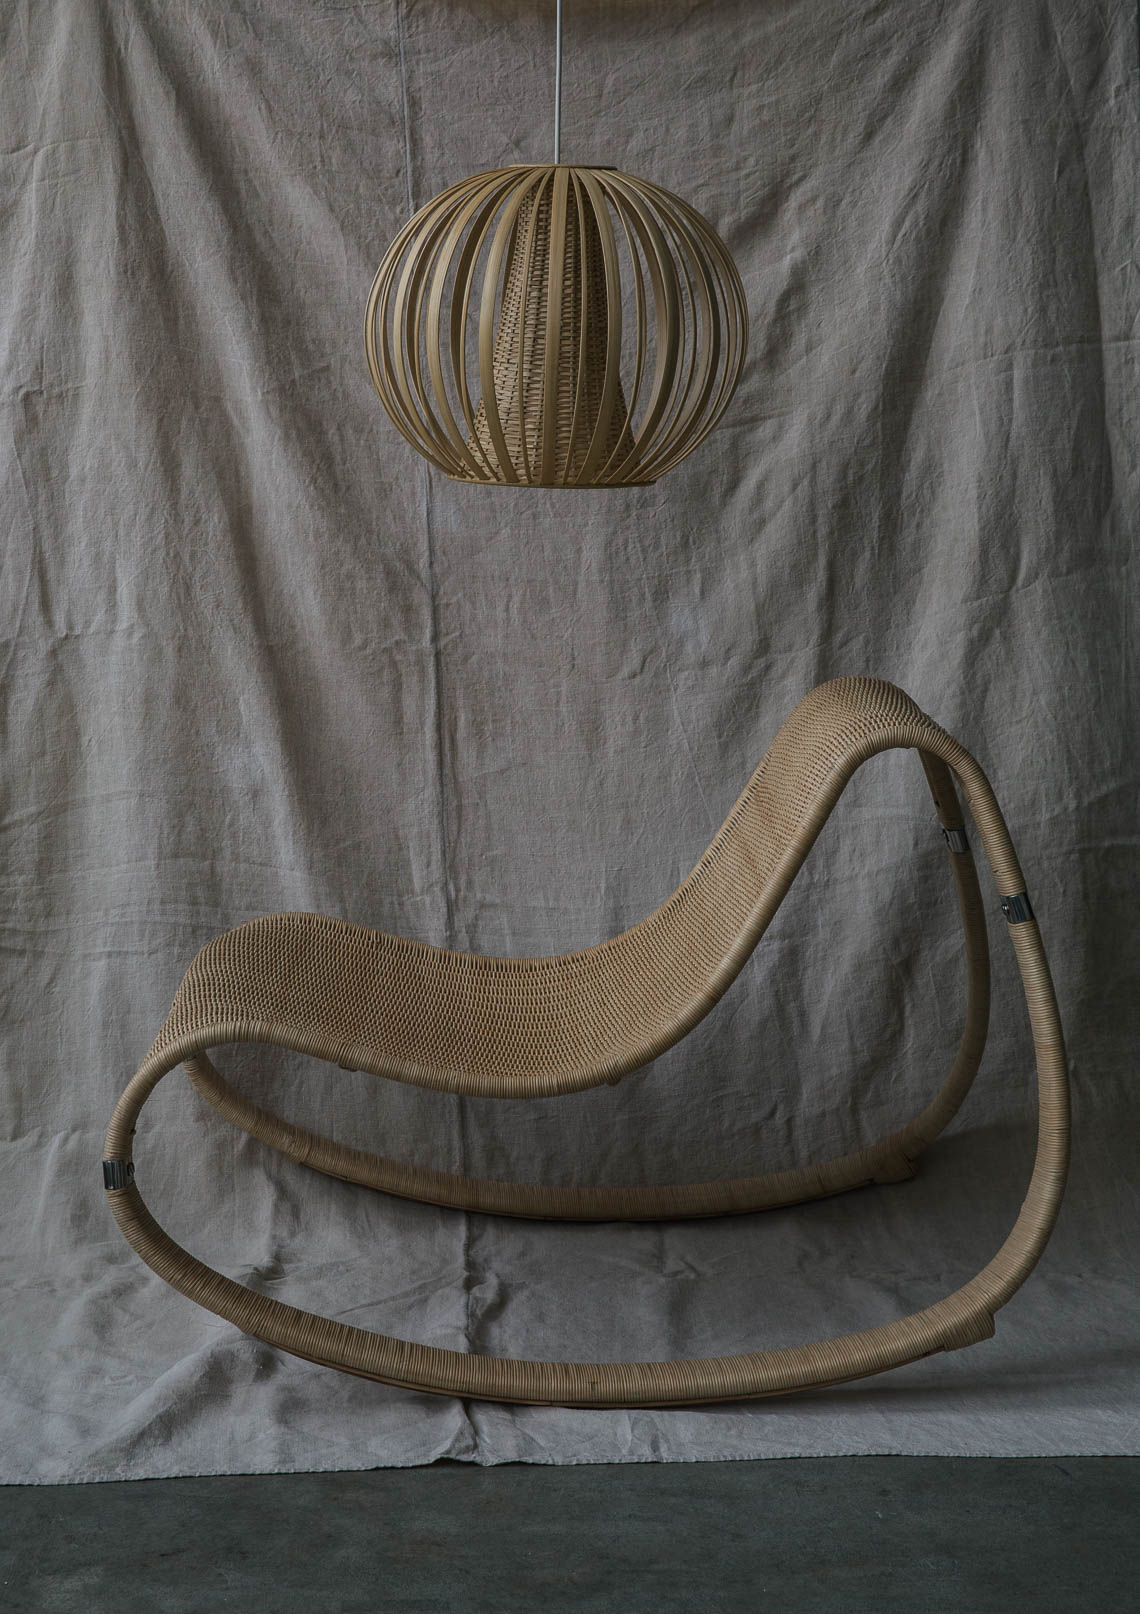 Designer Chair and Basket Light